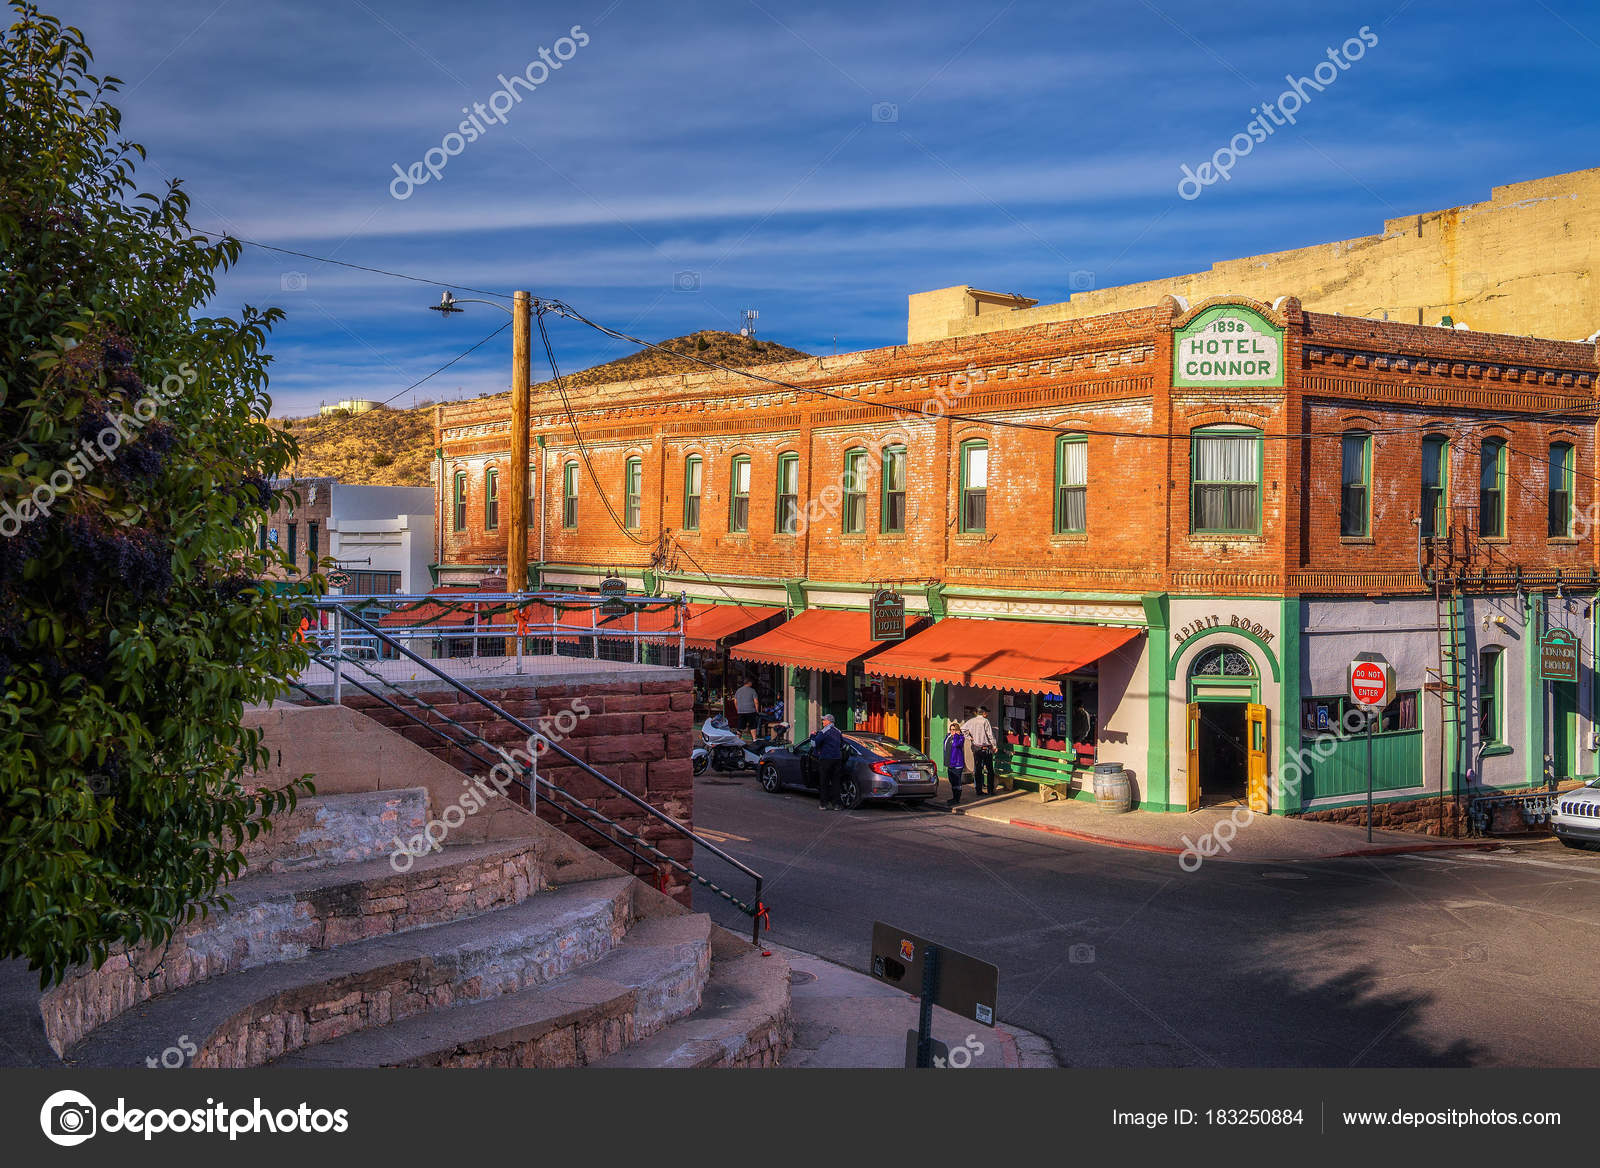 Historic Connor Hotel In Jerome Arizona Stock Photo